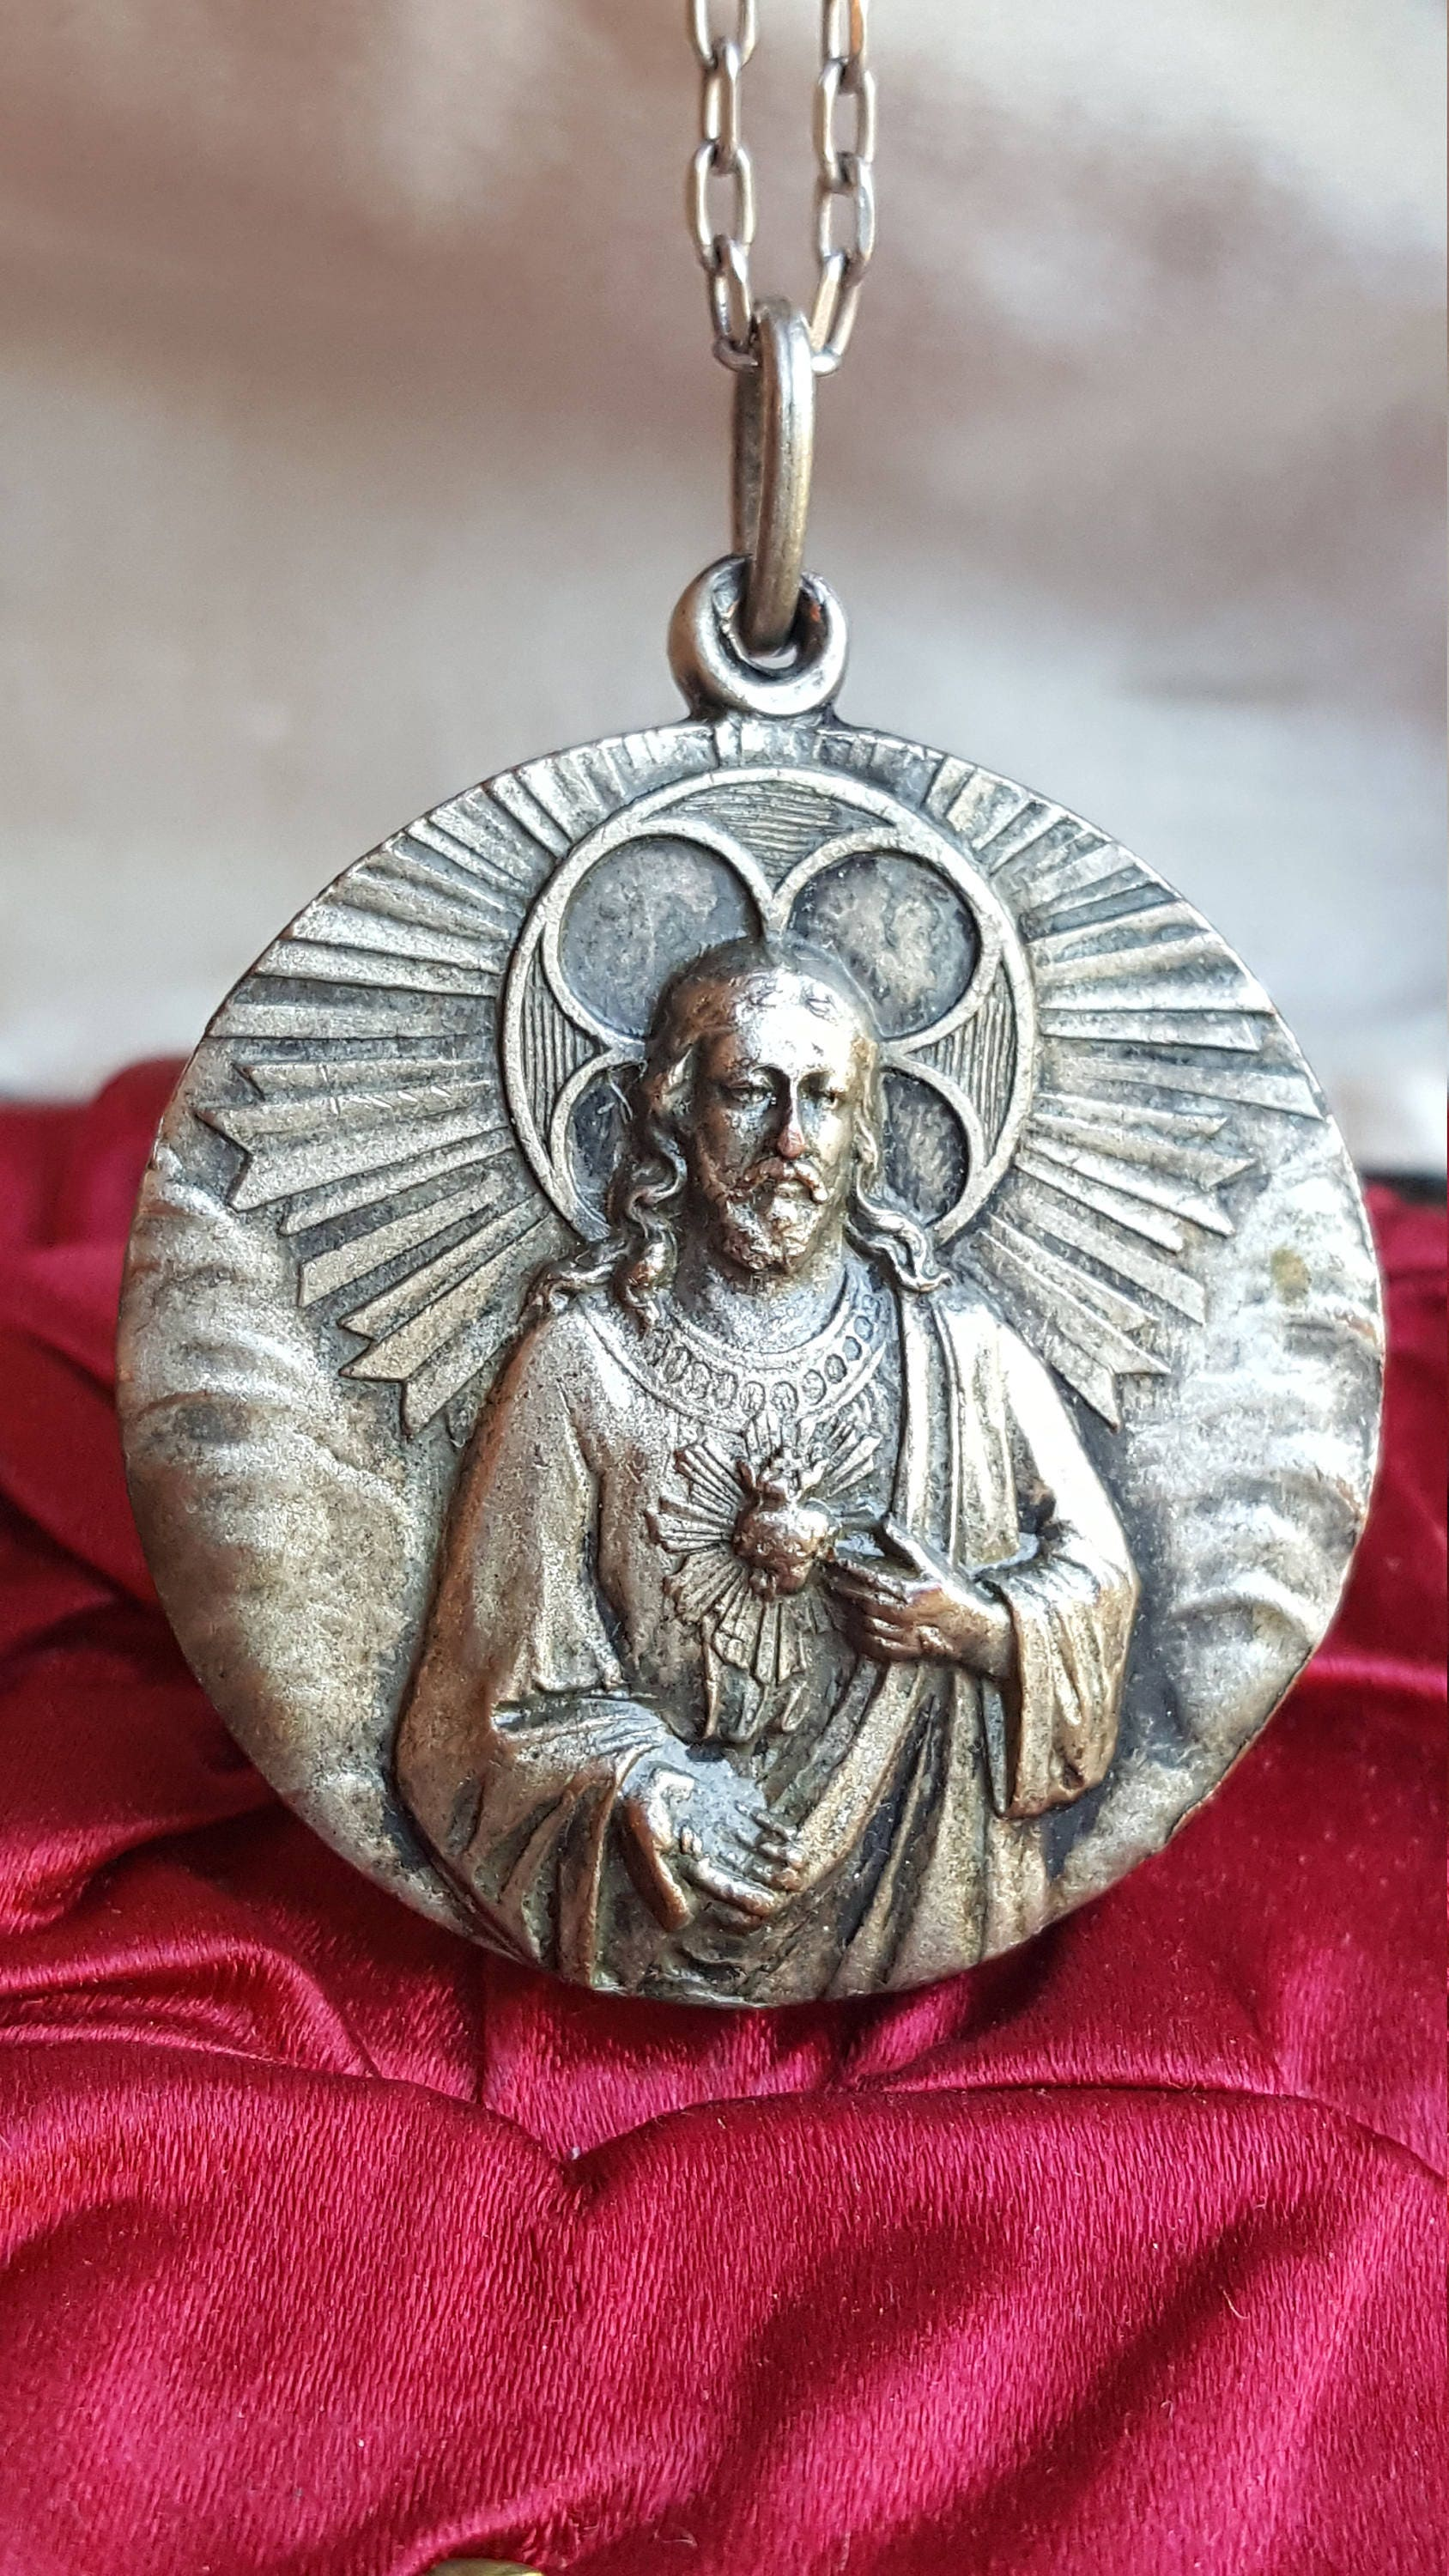 necklaces st medallion stchristophermedal christopher catholic